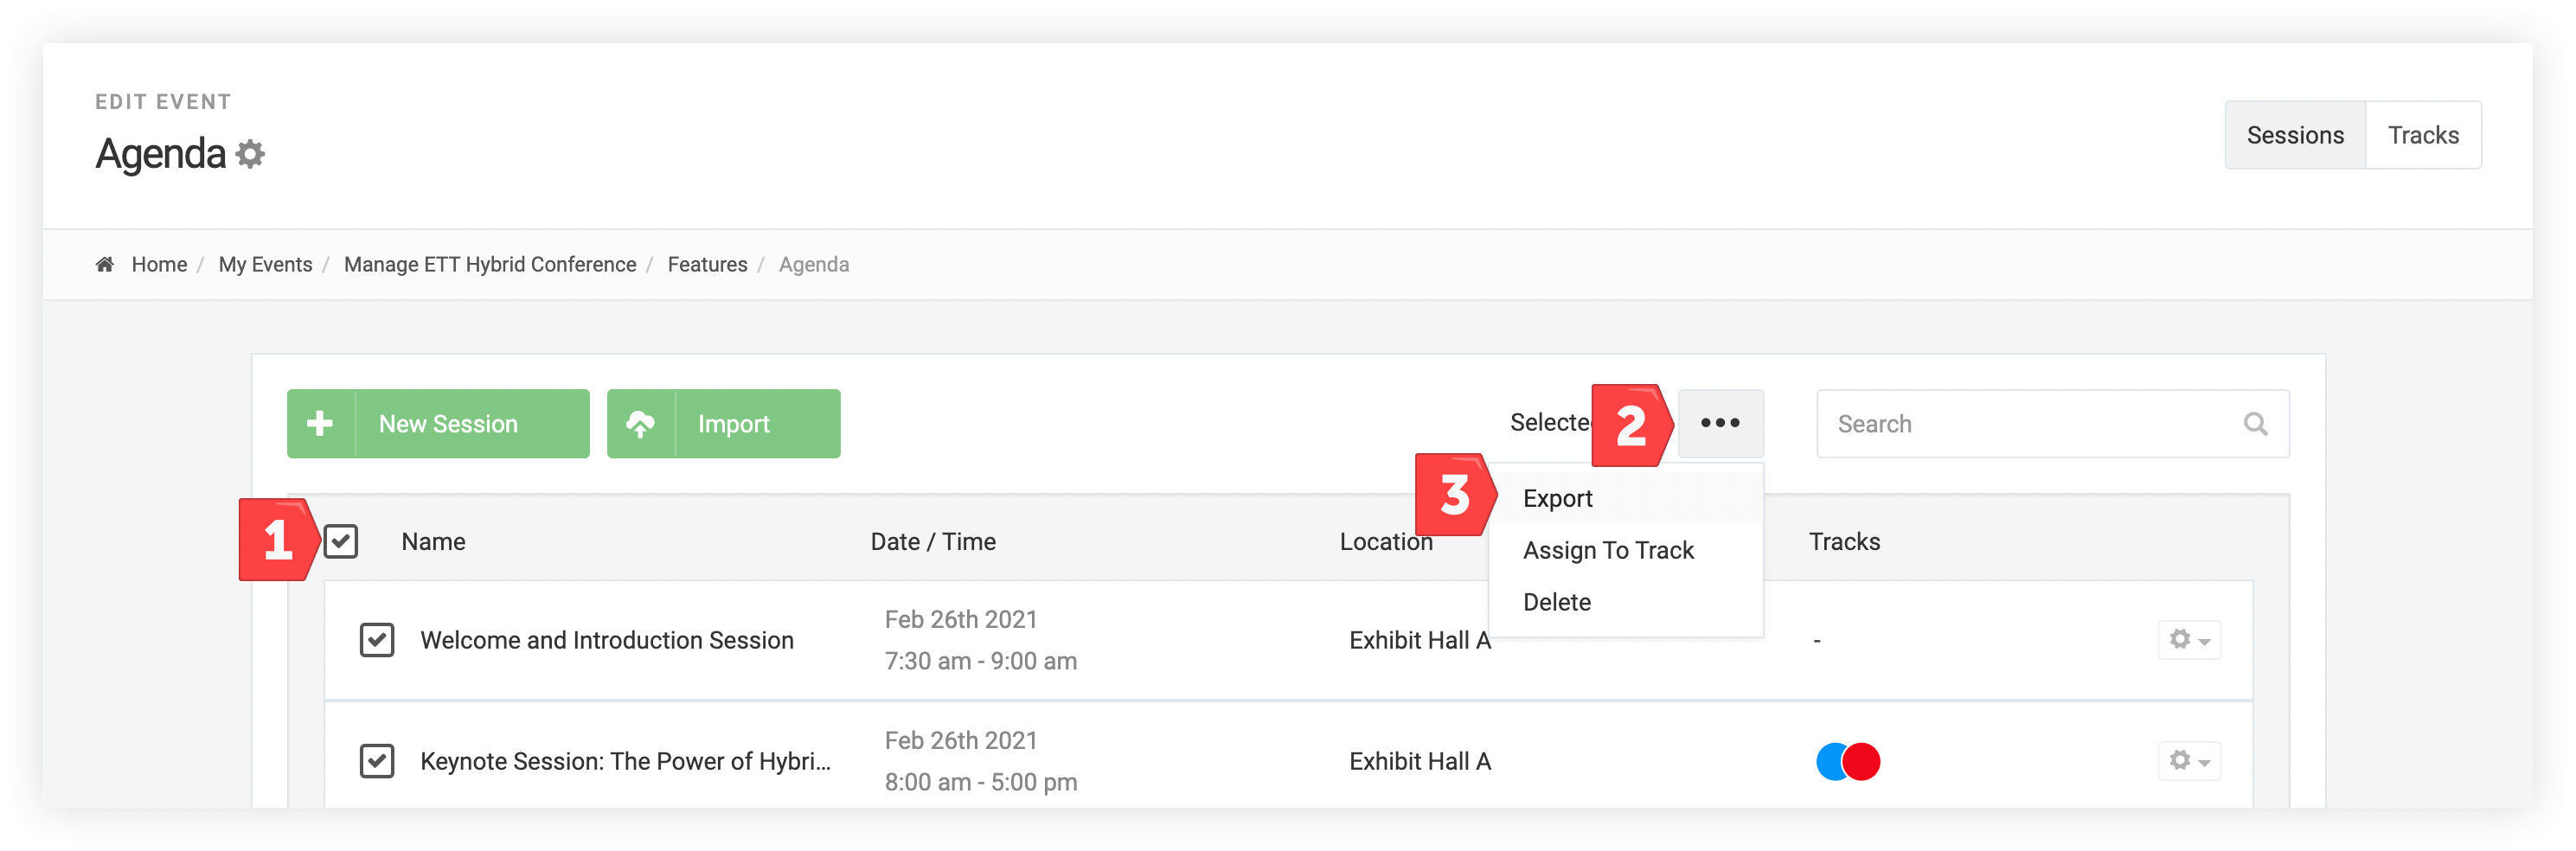 Screenshot of the process just described using the Agenda feature.